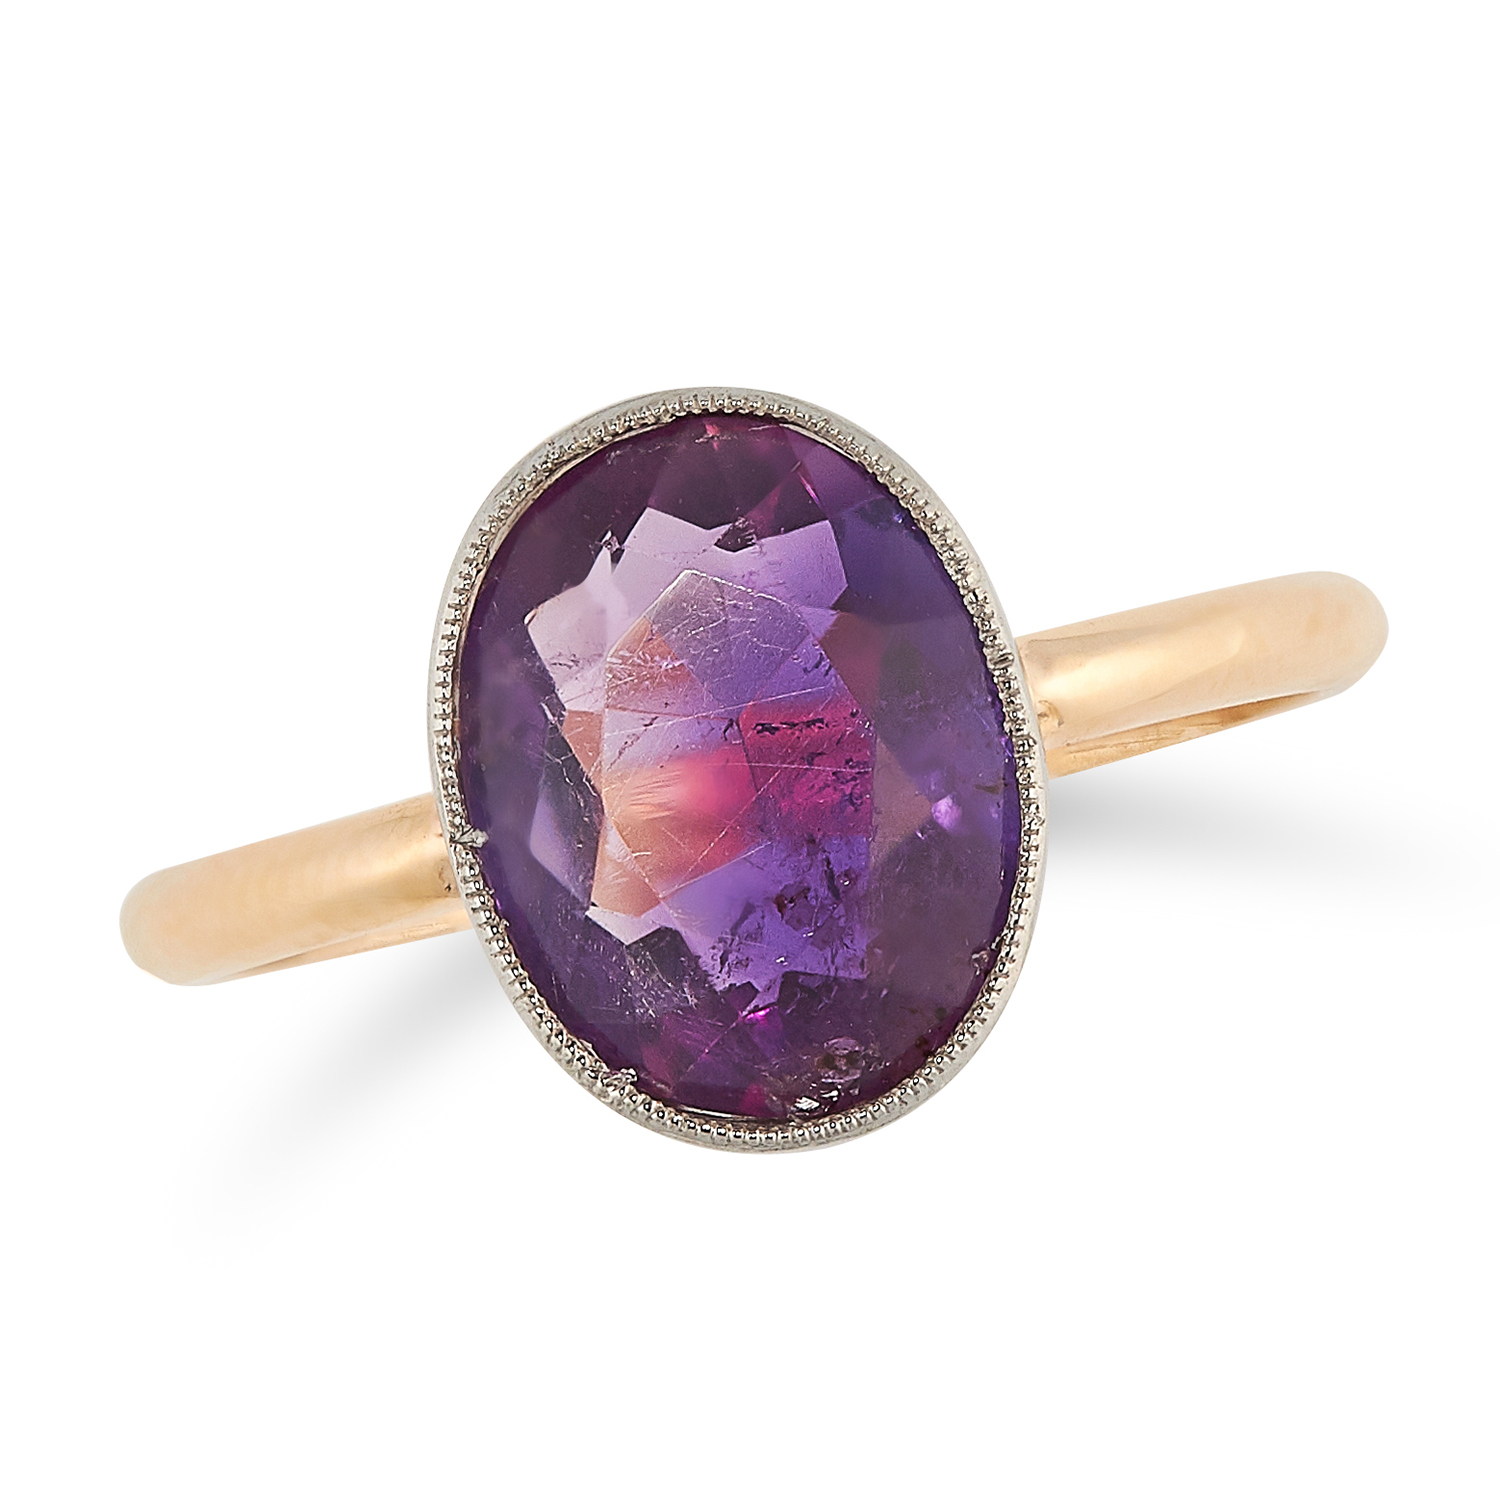 Los 13A - AN AMETHYST RING set with an oval cut amethyst to a plain band, size O / 7, 2.5g.